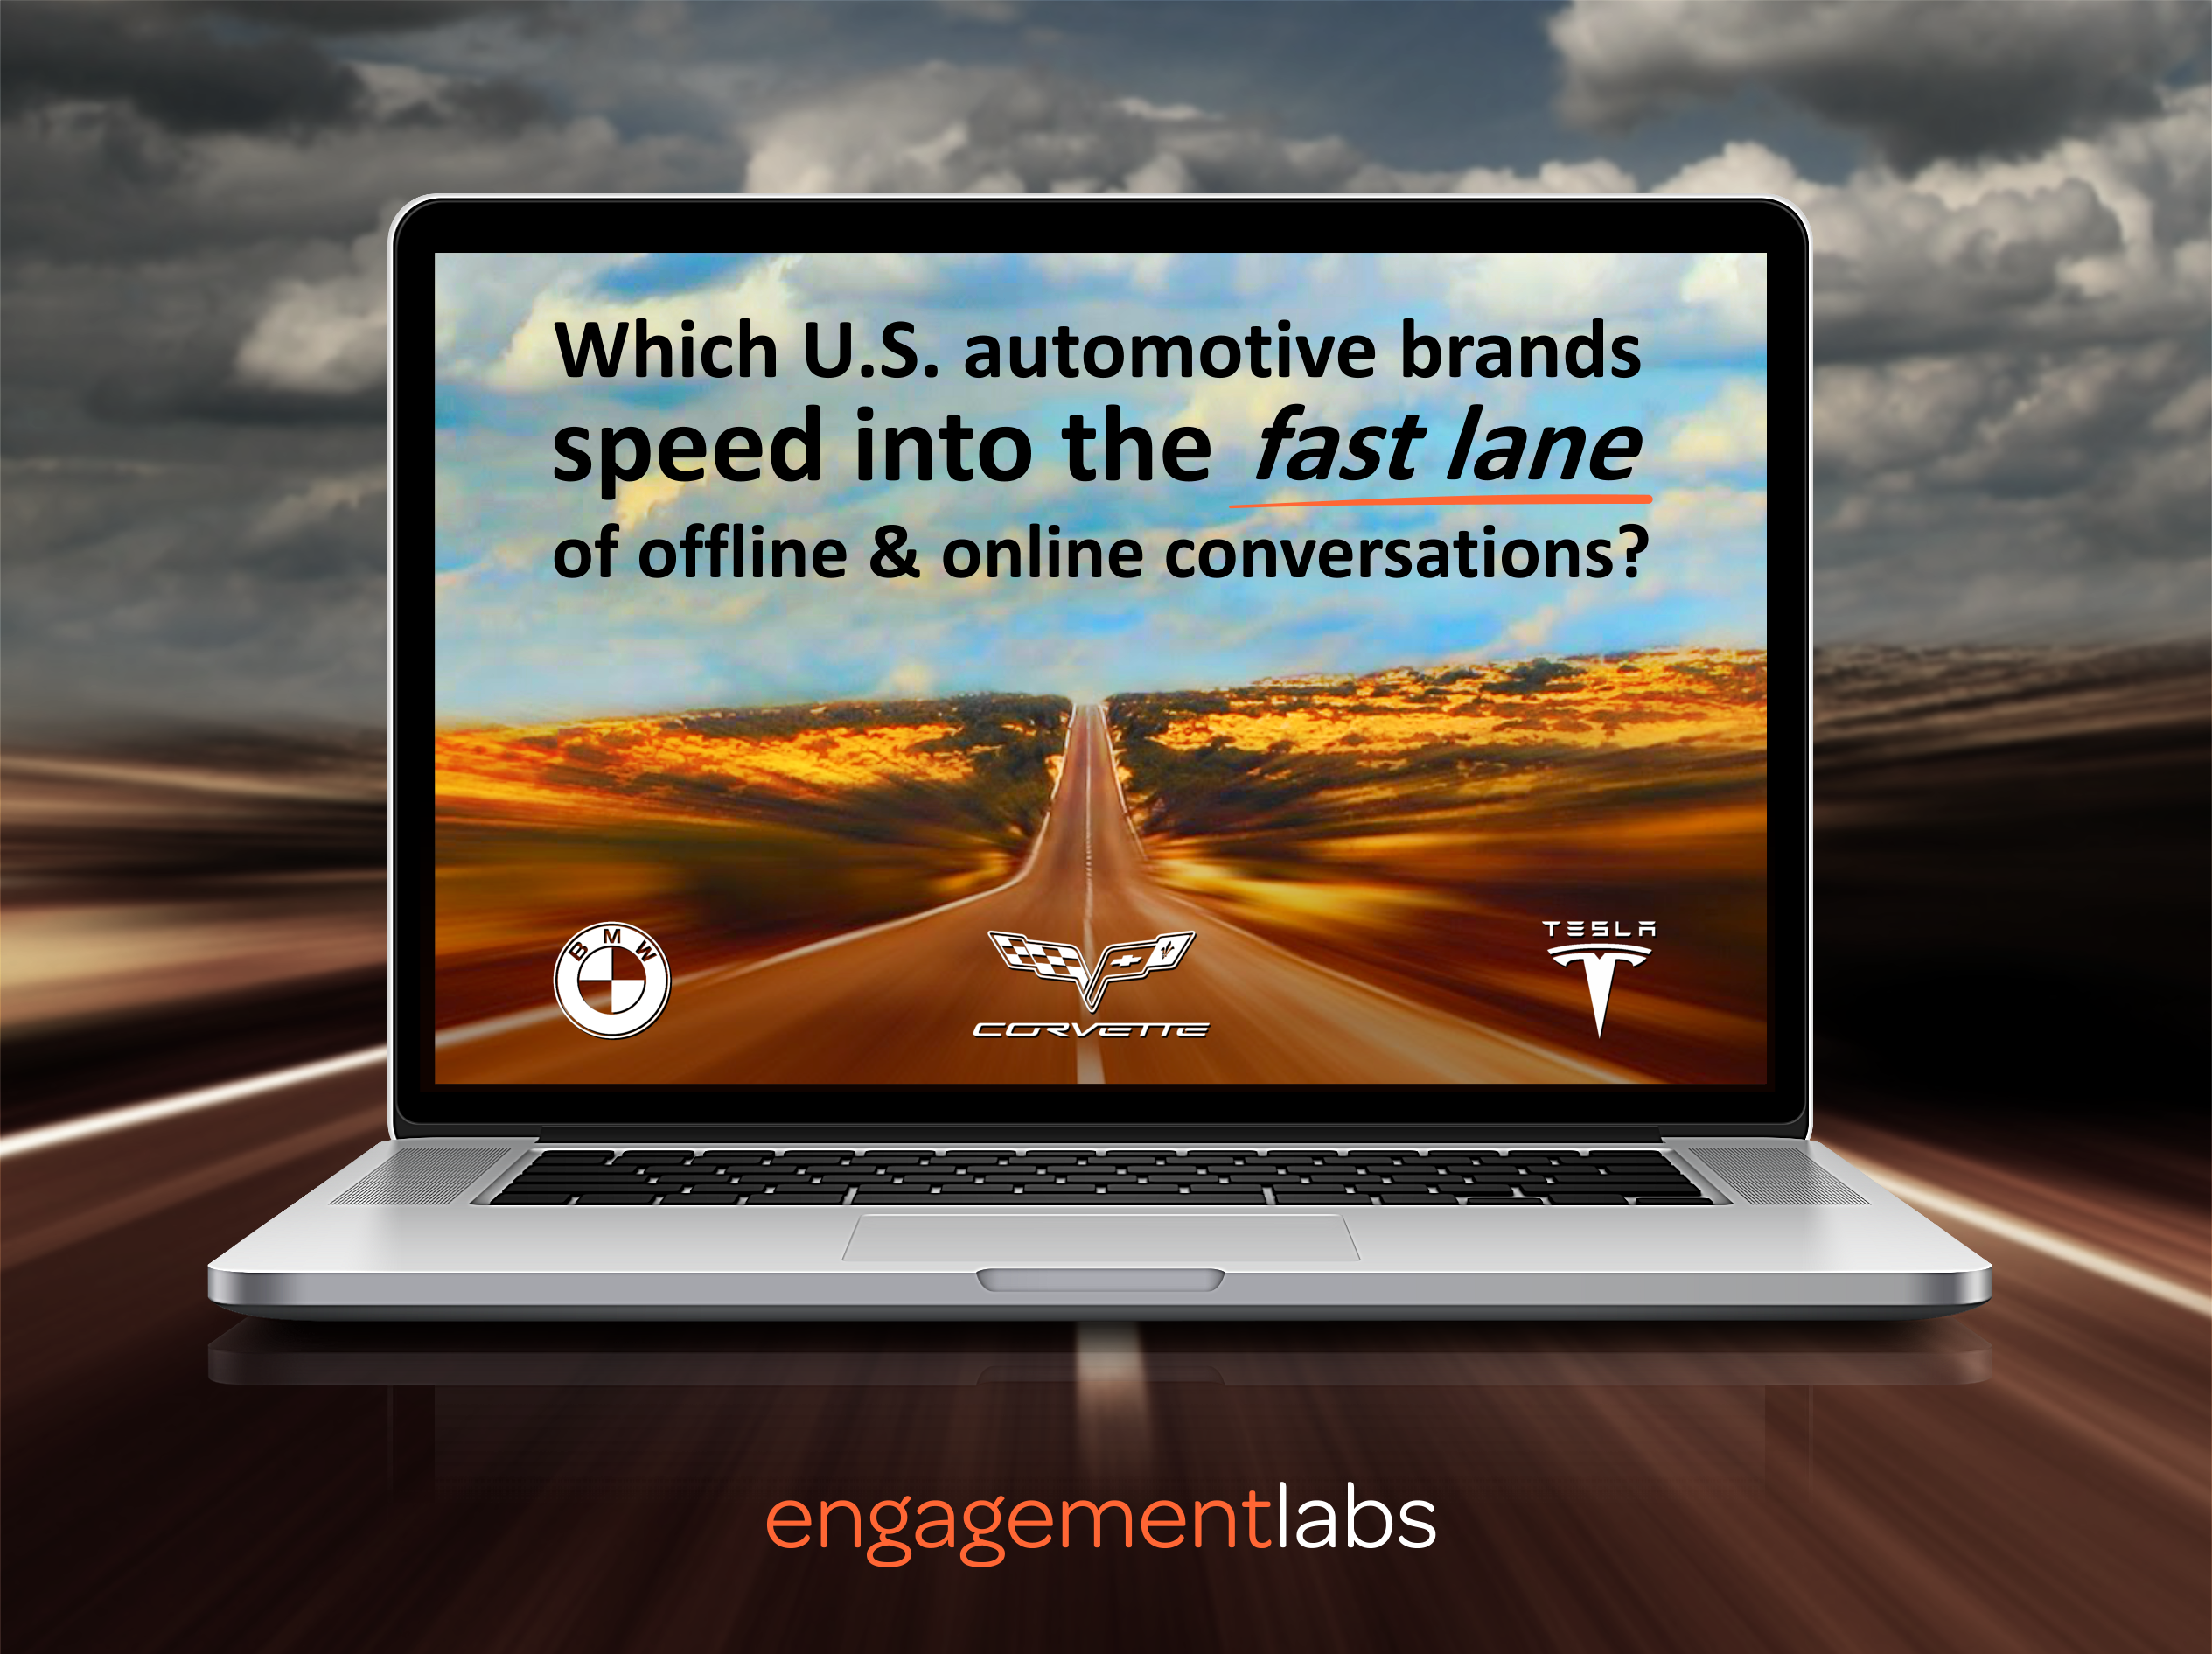 Corvette, BMW and Tesla Motors Speed into the Fast Lane of Brand Conversations both Online and Offline